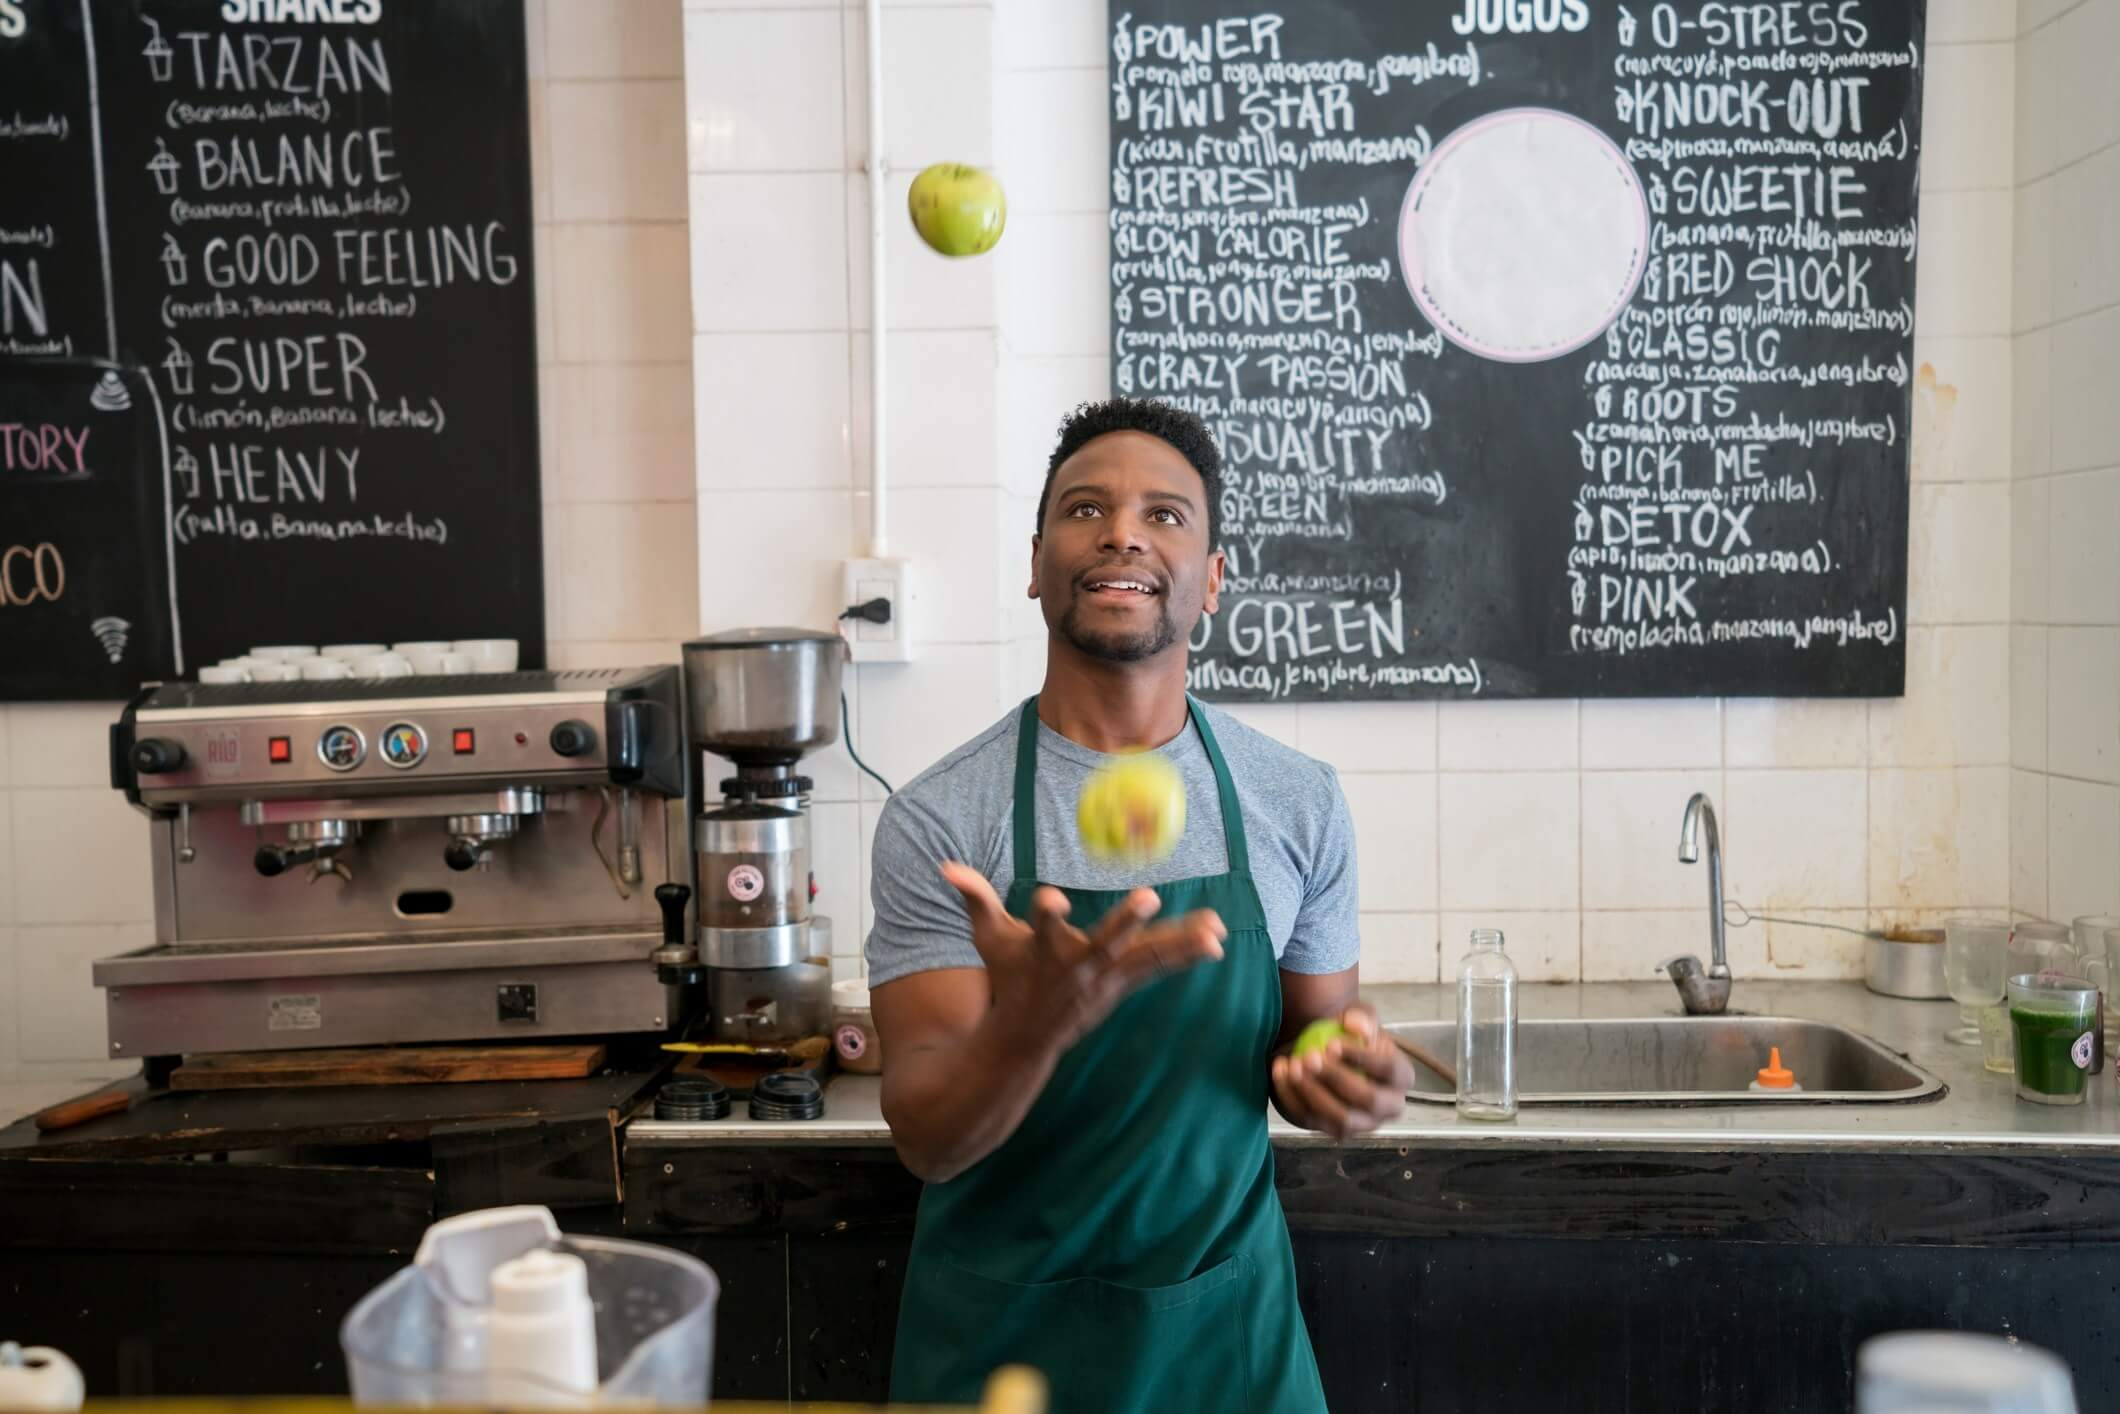 Barista juggling apples at a coffee shop